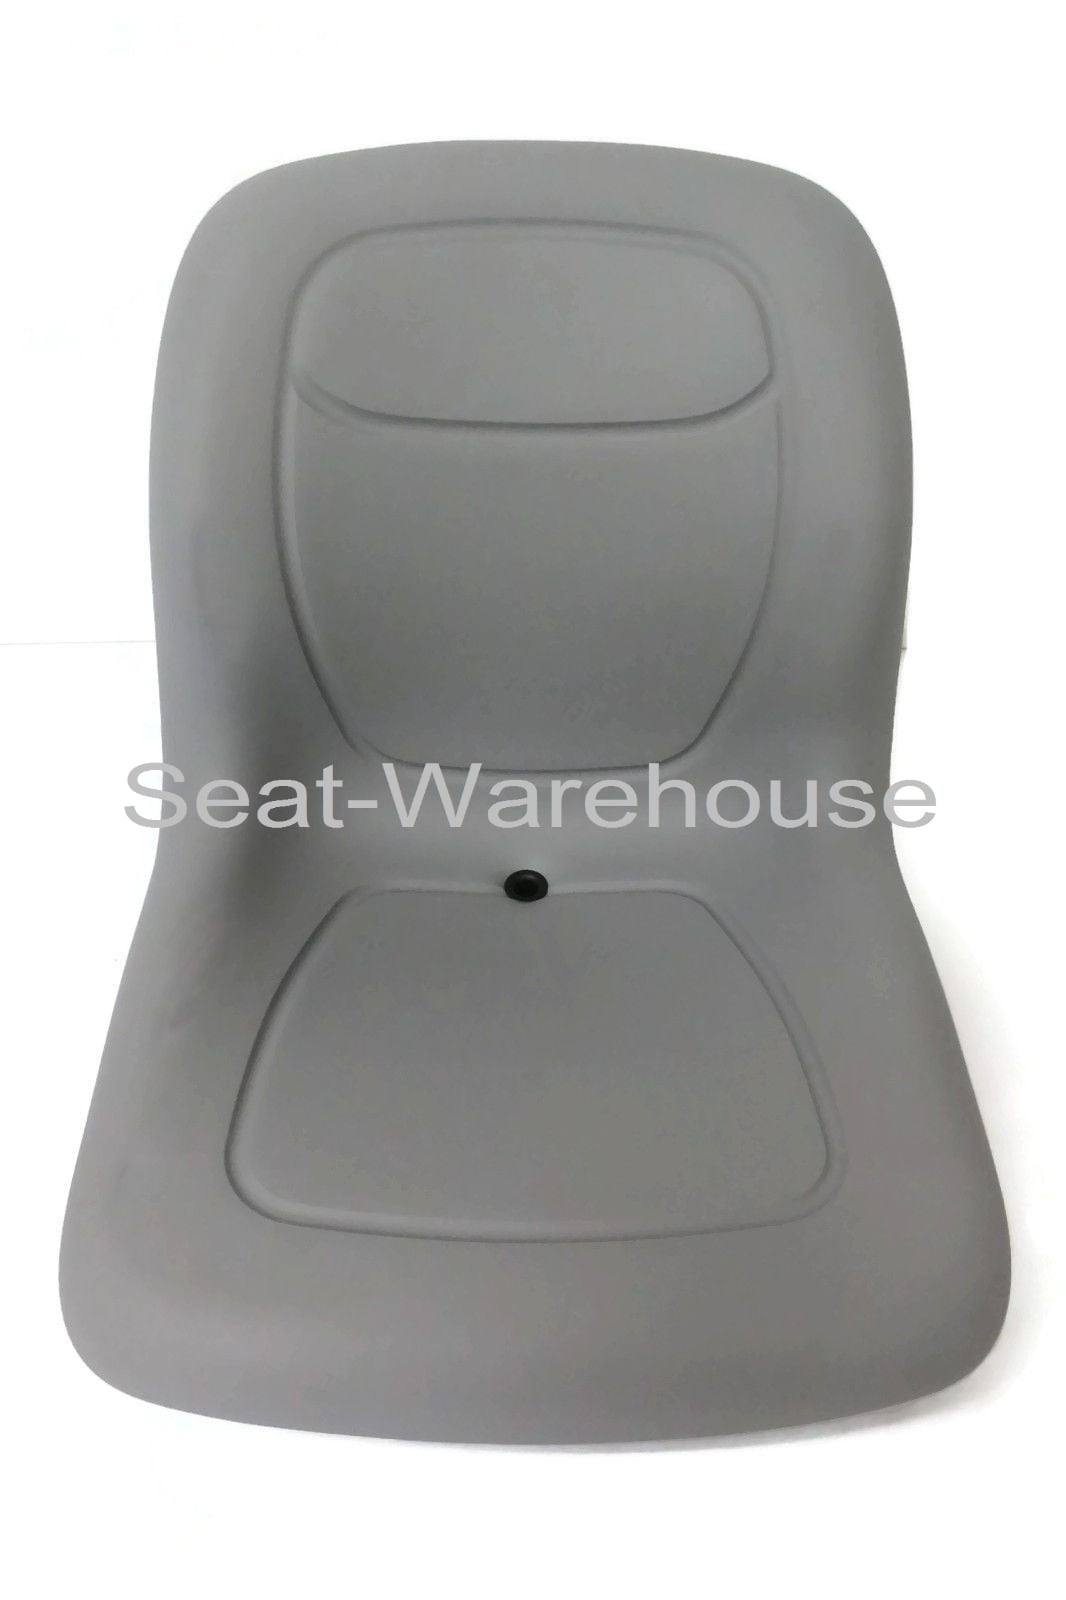 2 Gray HIGH BACK SEATS Toro Workman MD HD 2100 2300 4300 UTV Utility Vehicle TN